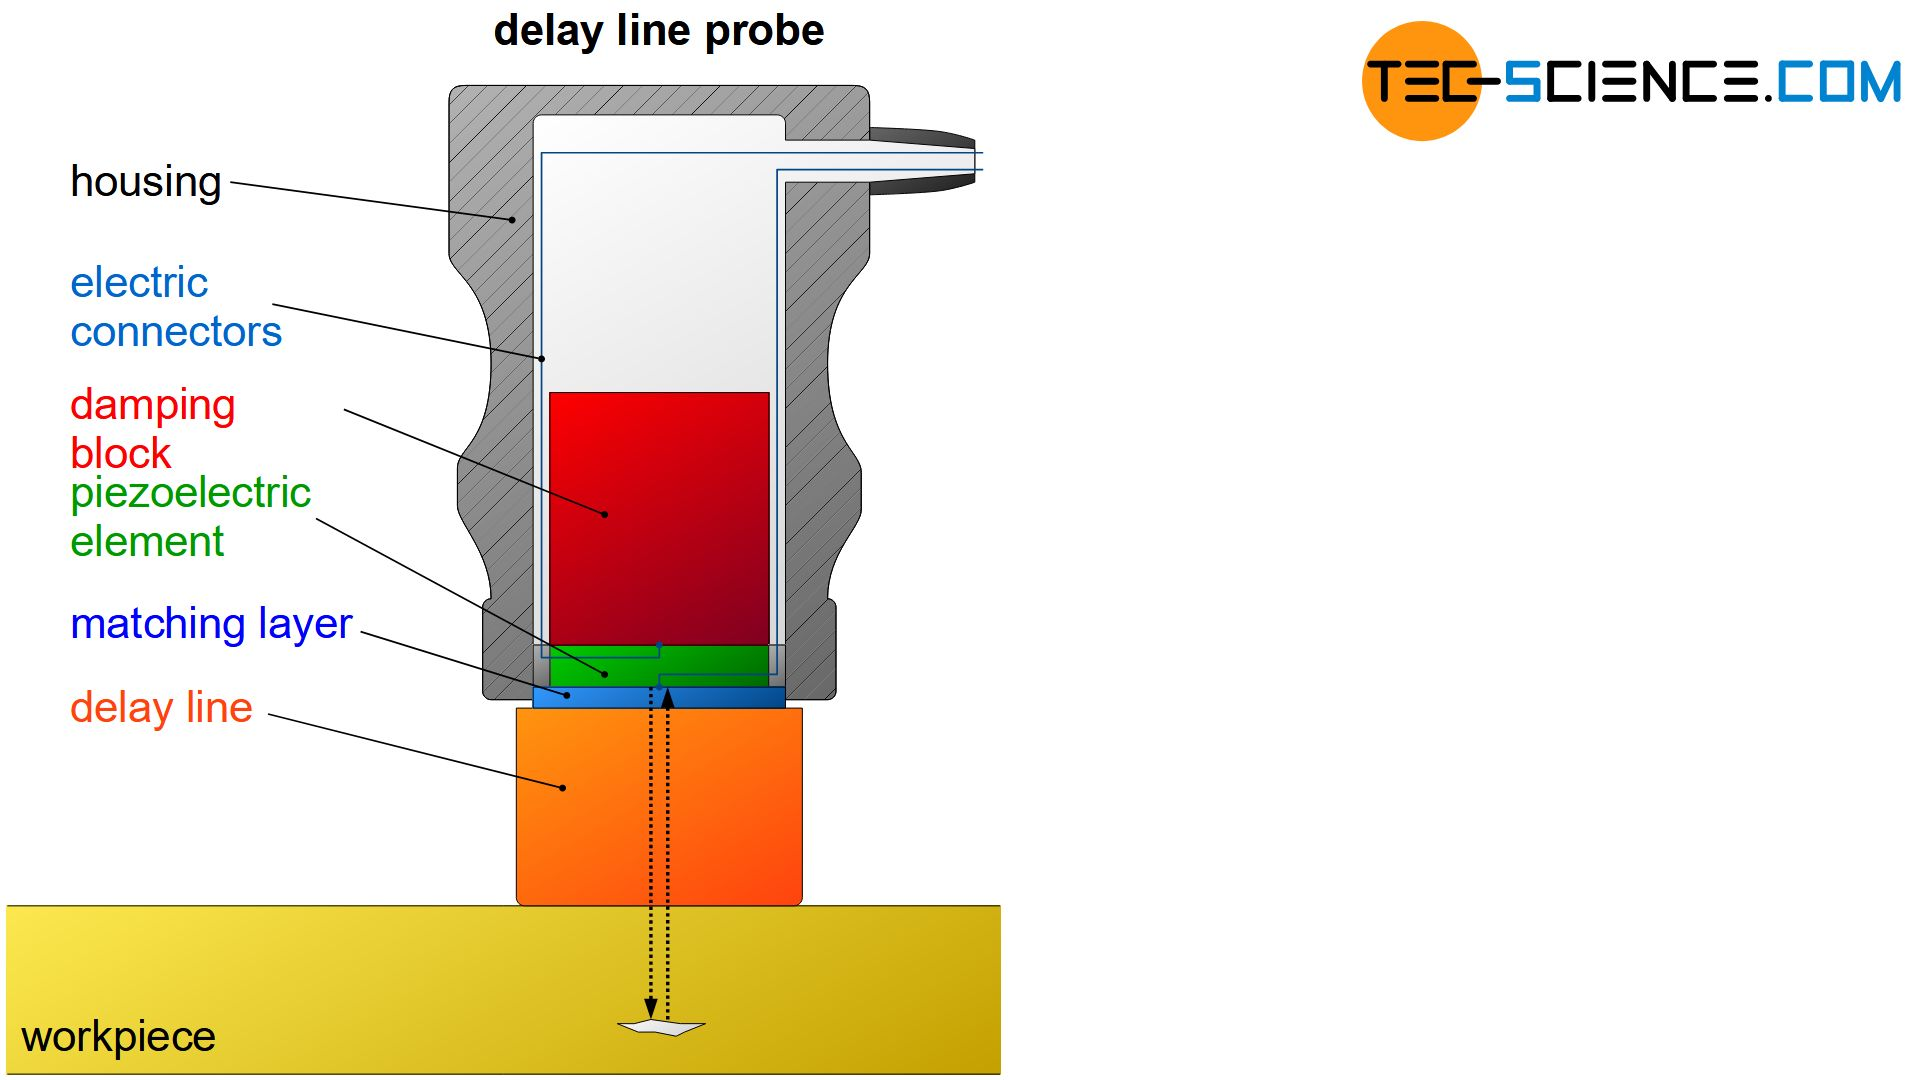 Components of a delay line probe